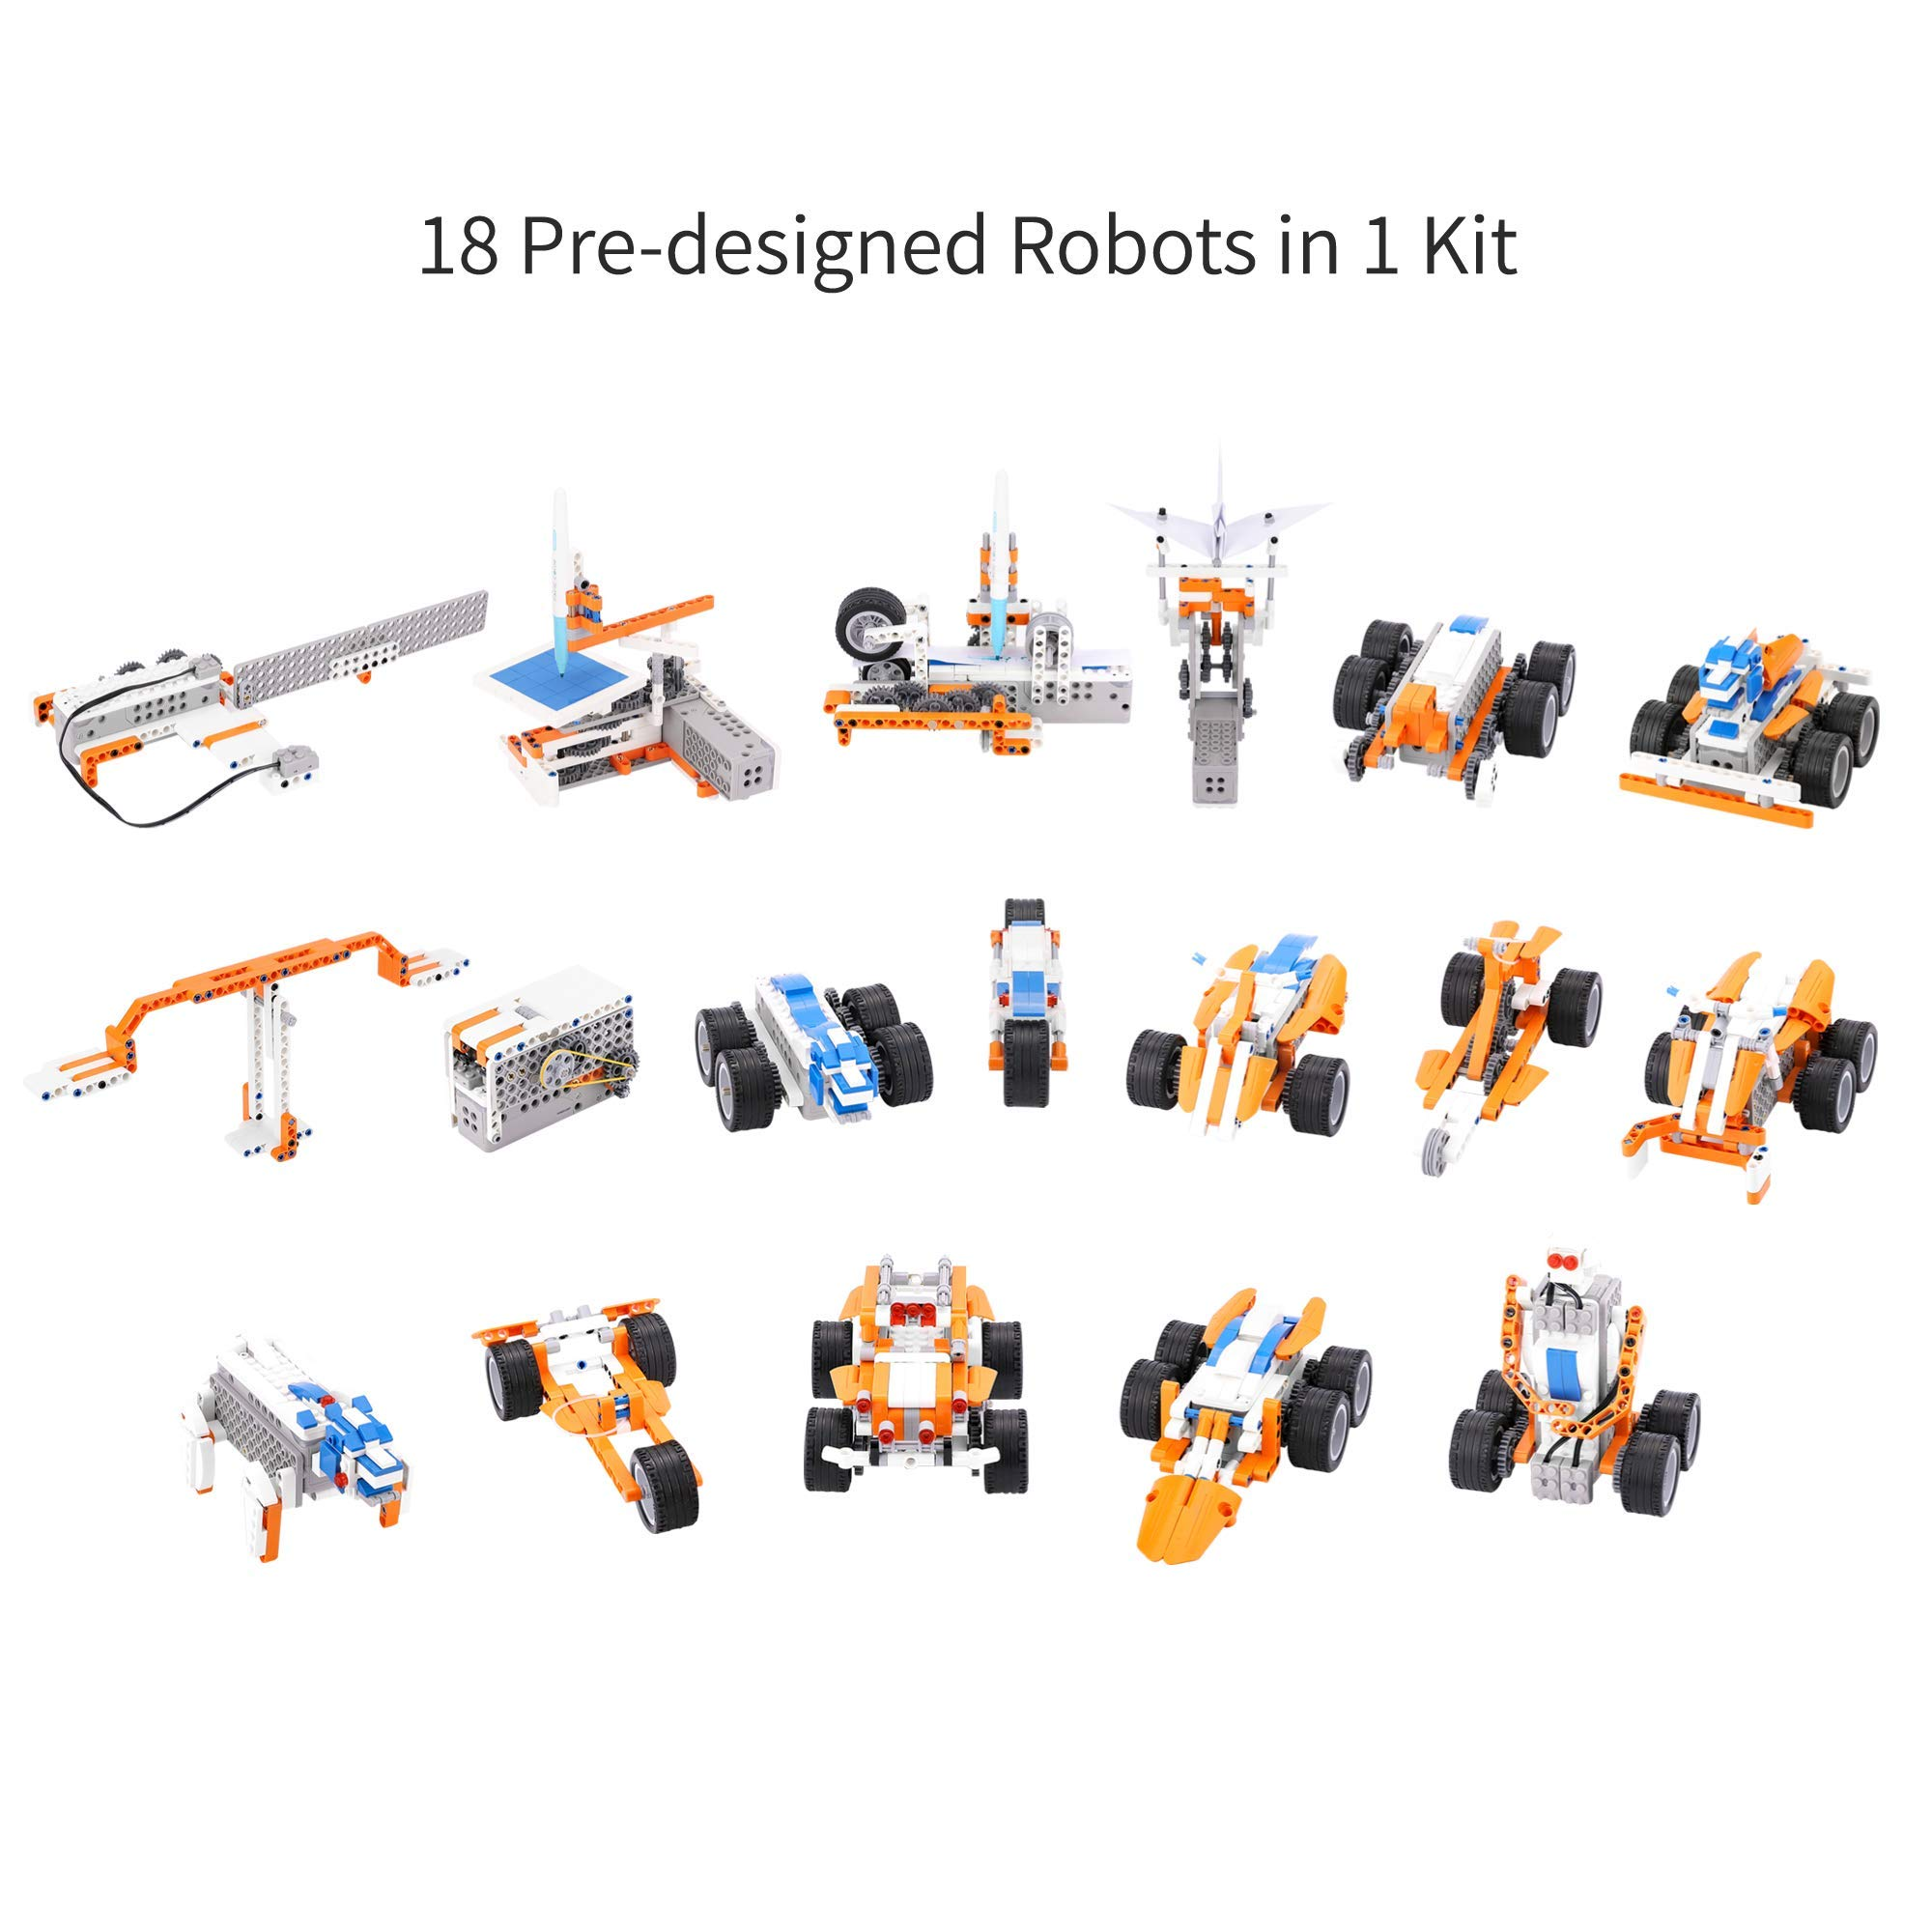 Apitor SuperBot, Educational Building Block 18 in 1 Robot Kit, APP Remote Control, STEM Coding Learning Toy, Ideal Gift for Kids 8+, Compatible with Major Building Block Toys (400+ Pieces) by Apitor Technology Co., Ltd. (Image #2)